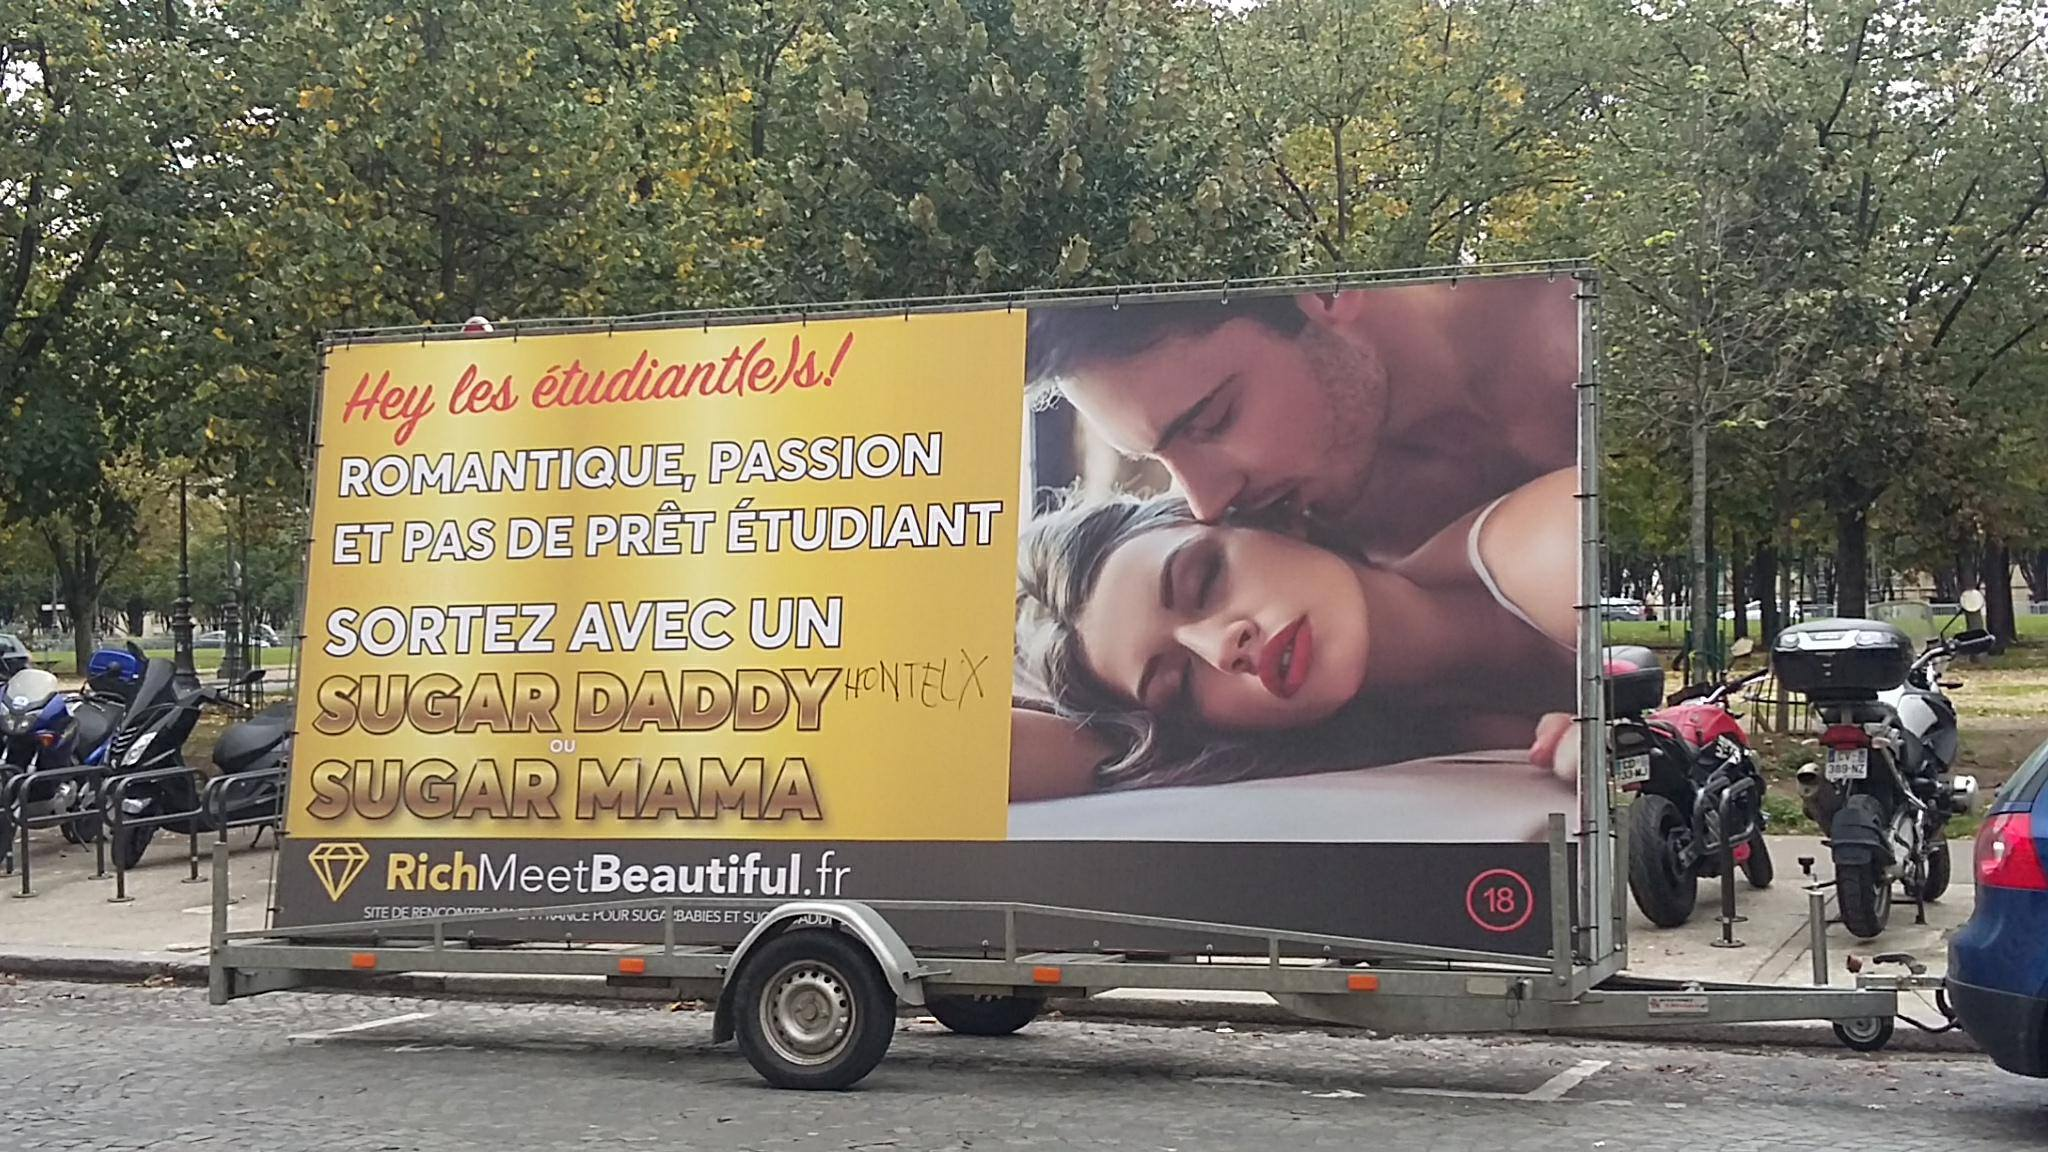 Passion ads dating